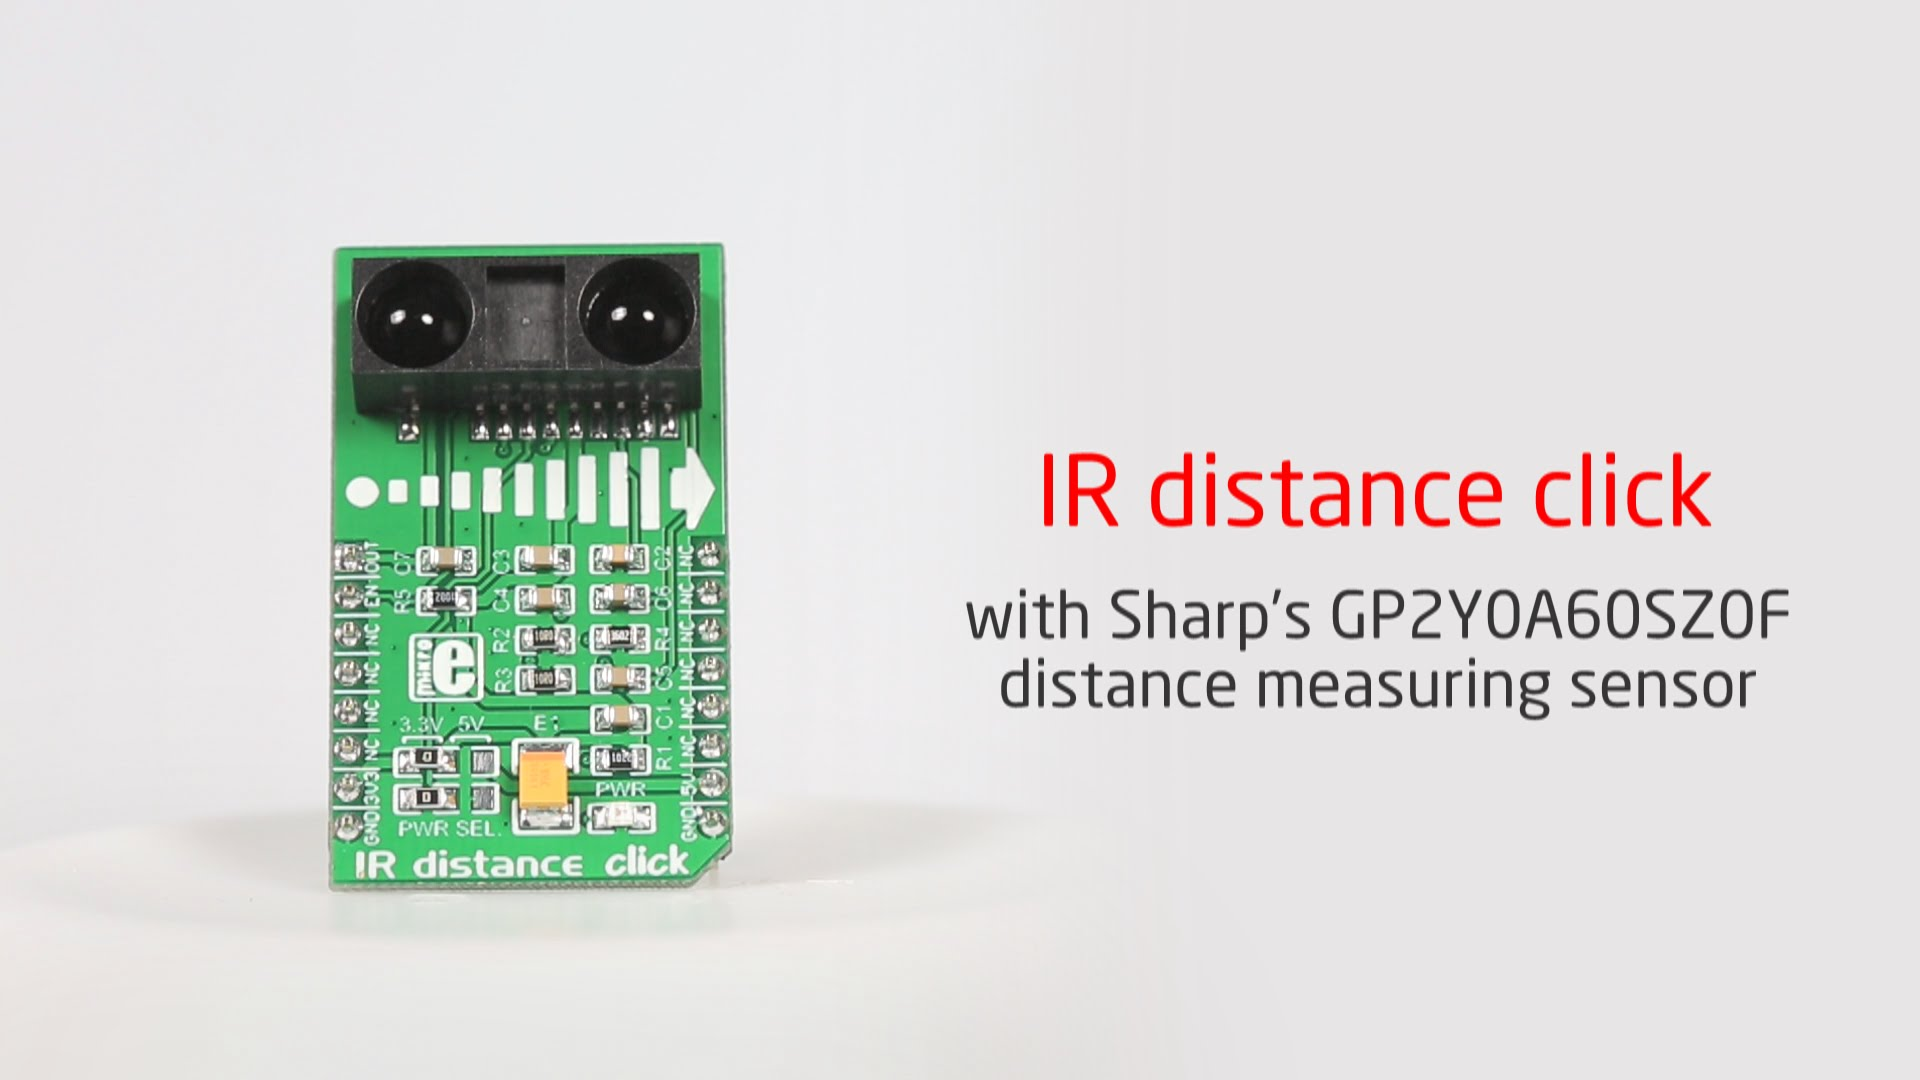 IR distance click released